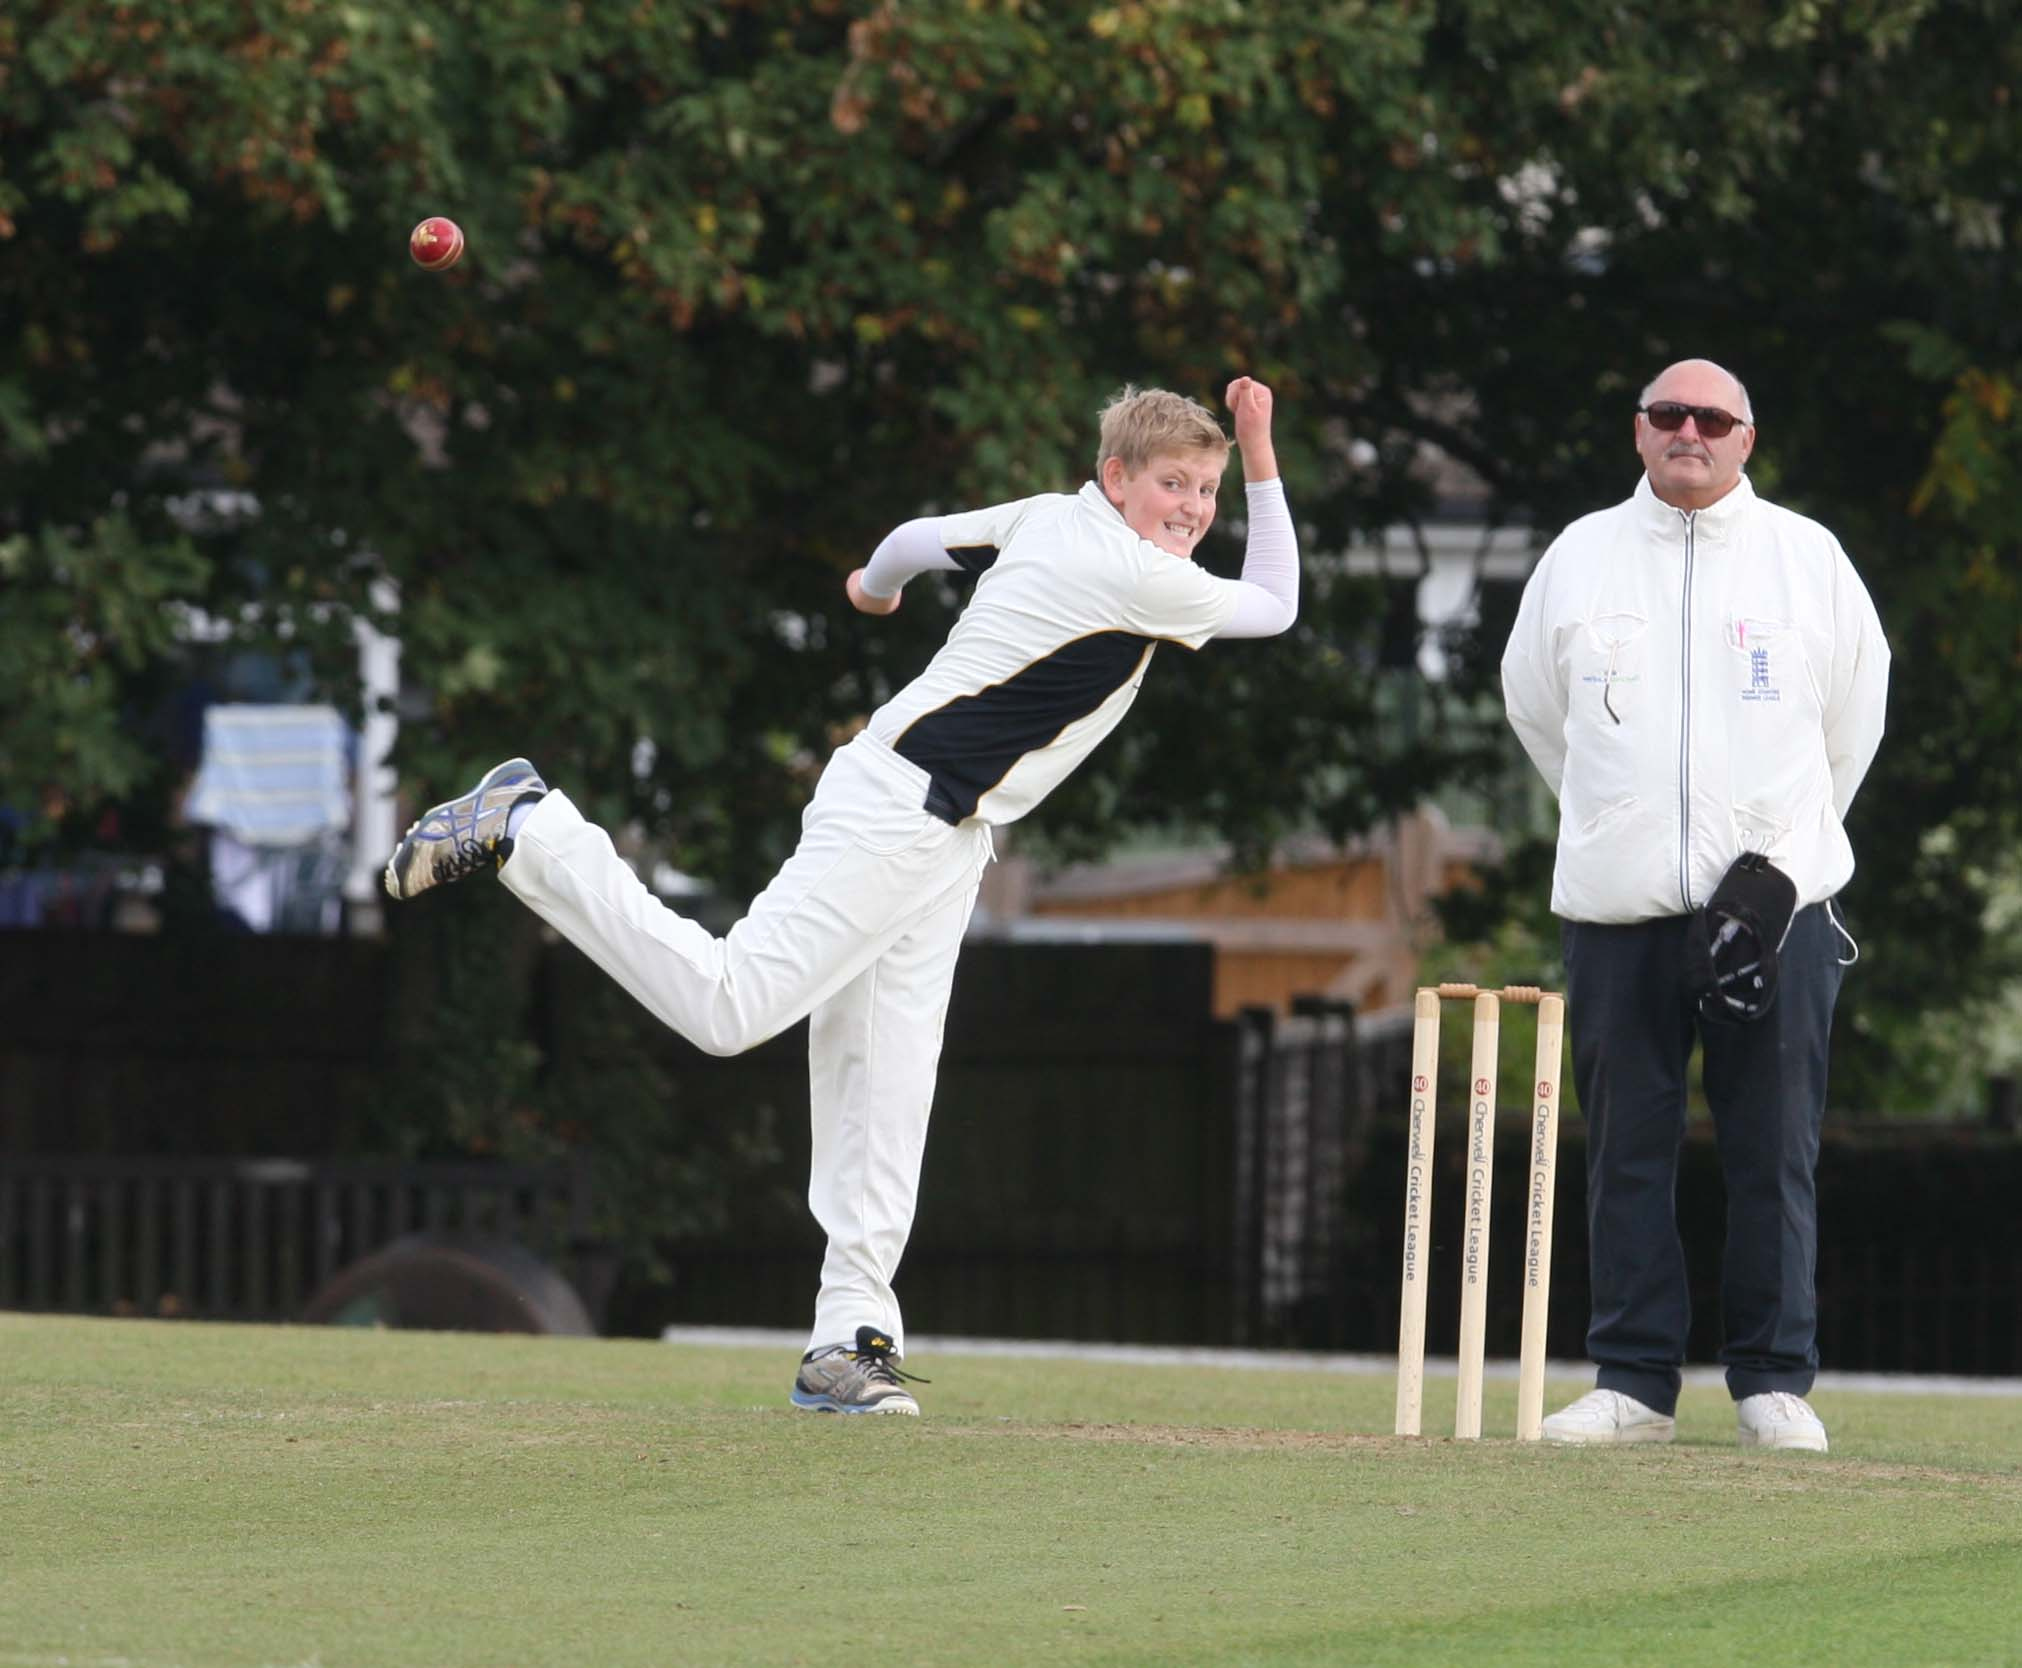 FINE DEBUT: Oxfordshire off-spinner Max Mannering bowled tidily in Wiltshire's second innings